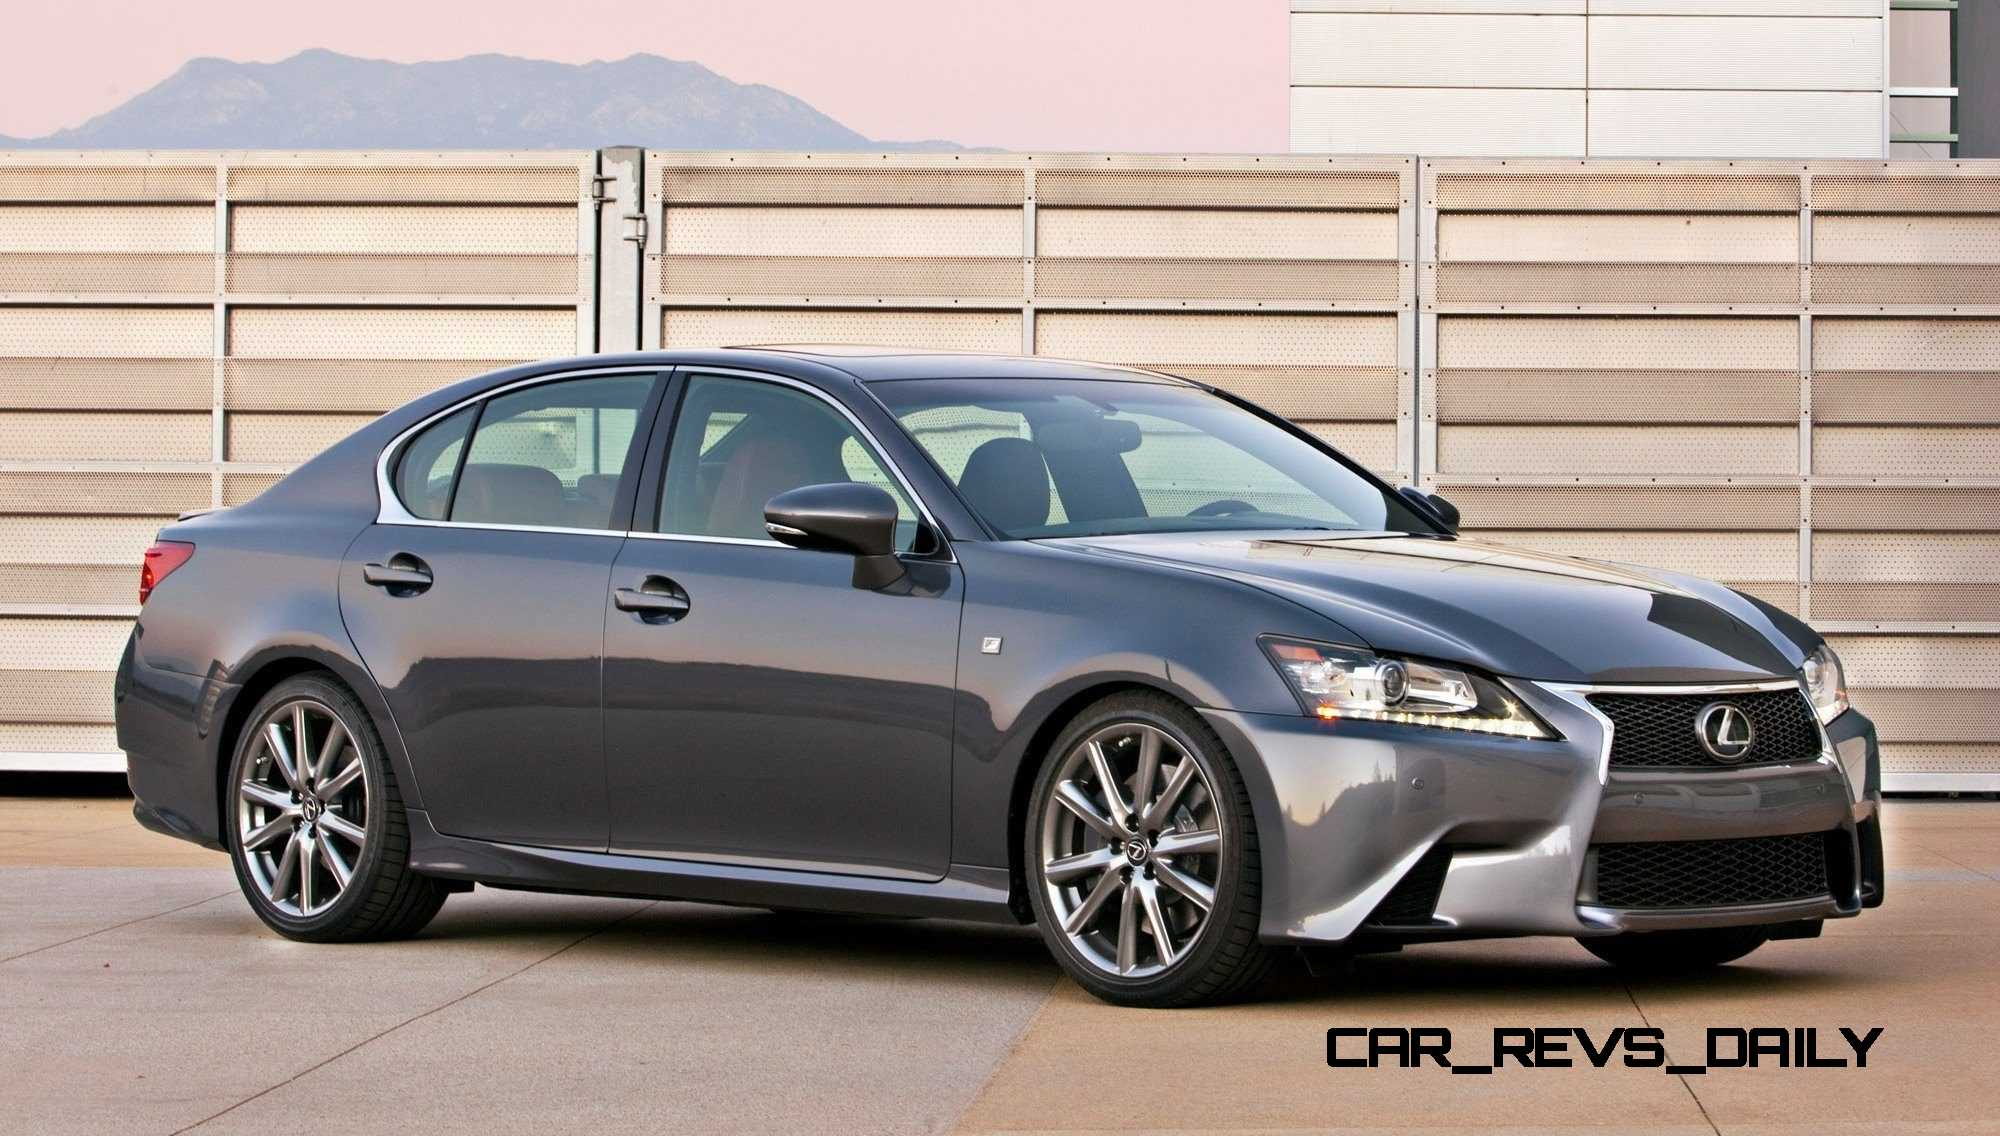 2018 Lexus GS 350 F Sport photo - 1